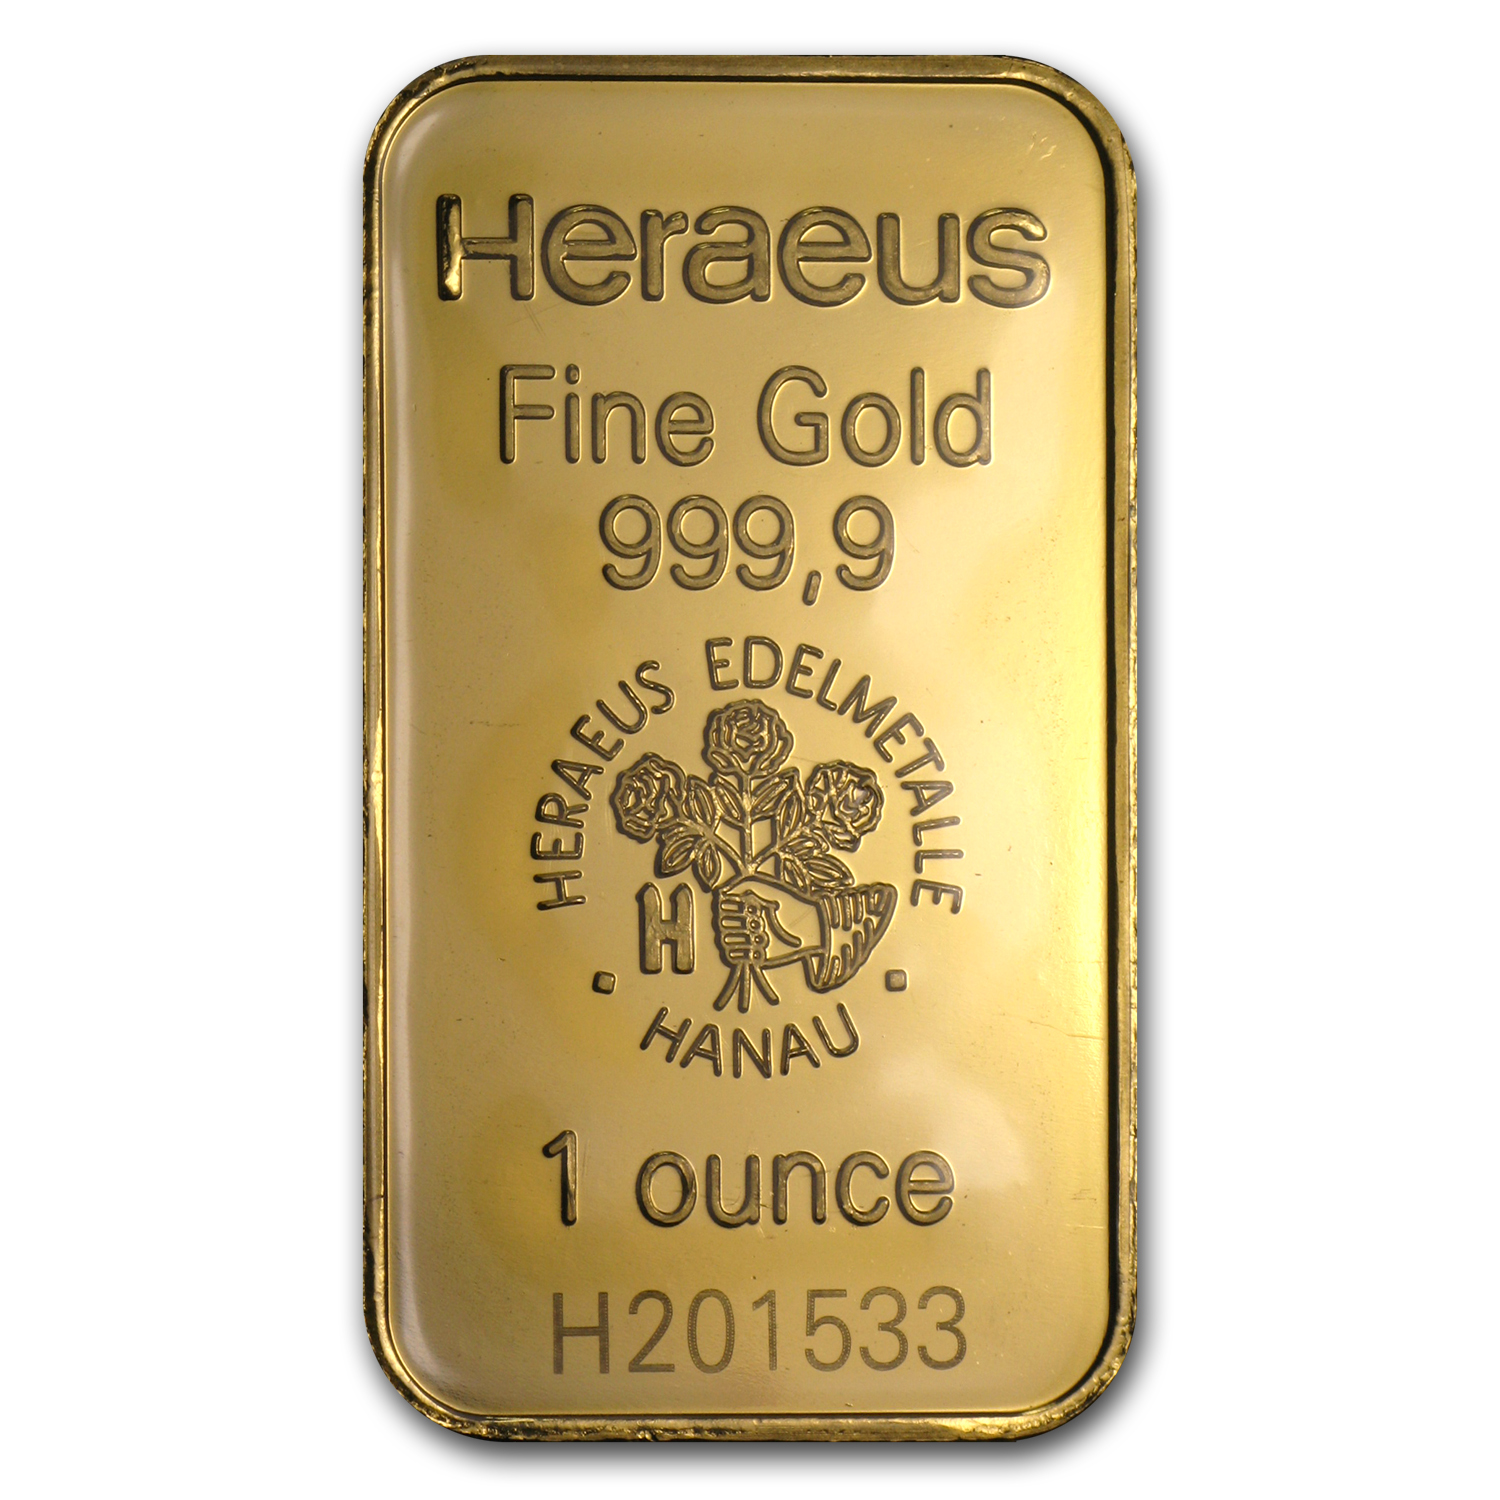 1 oz Gold Bars - Heraeus (New)